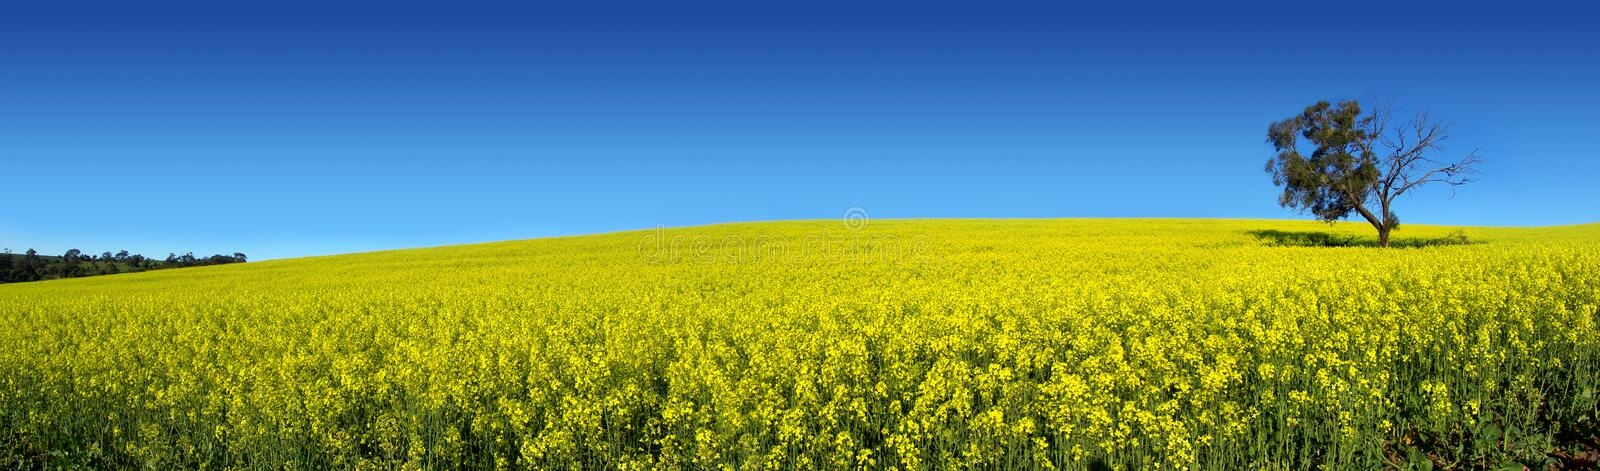 Canola panoramique image stock